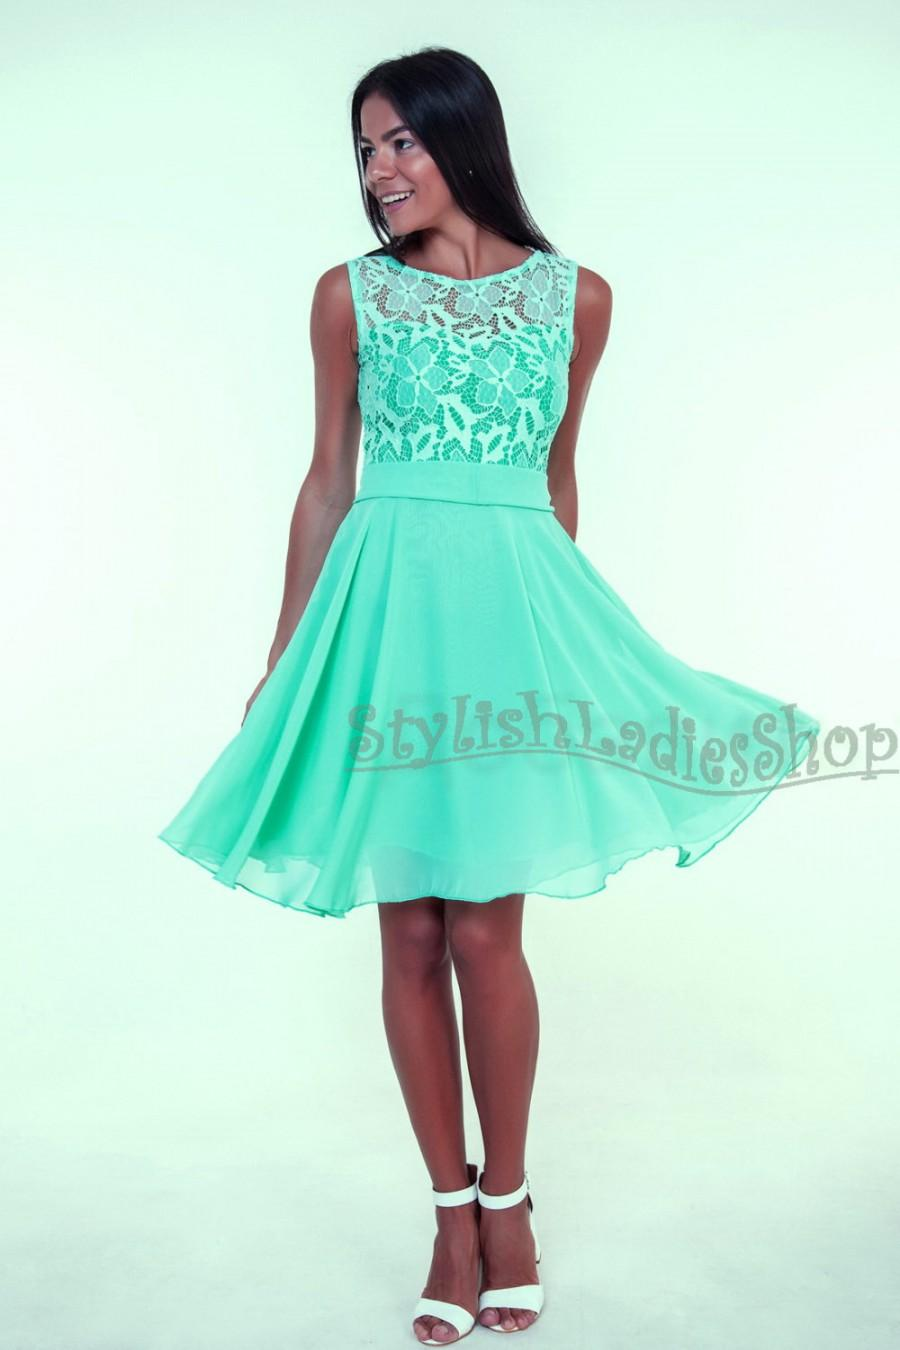 Mint Bridesmaid Dress Lace Wedding Bridesmaids Mint Lace Dress Mint ...